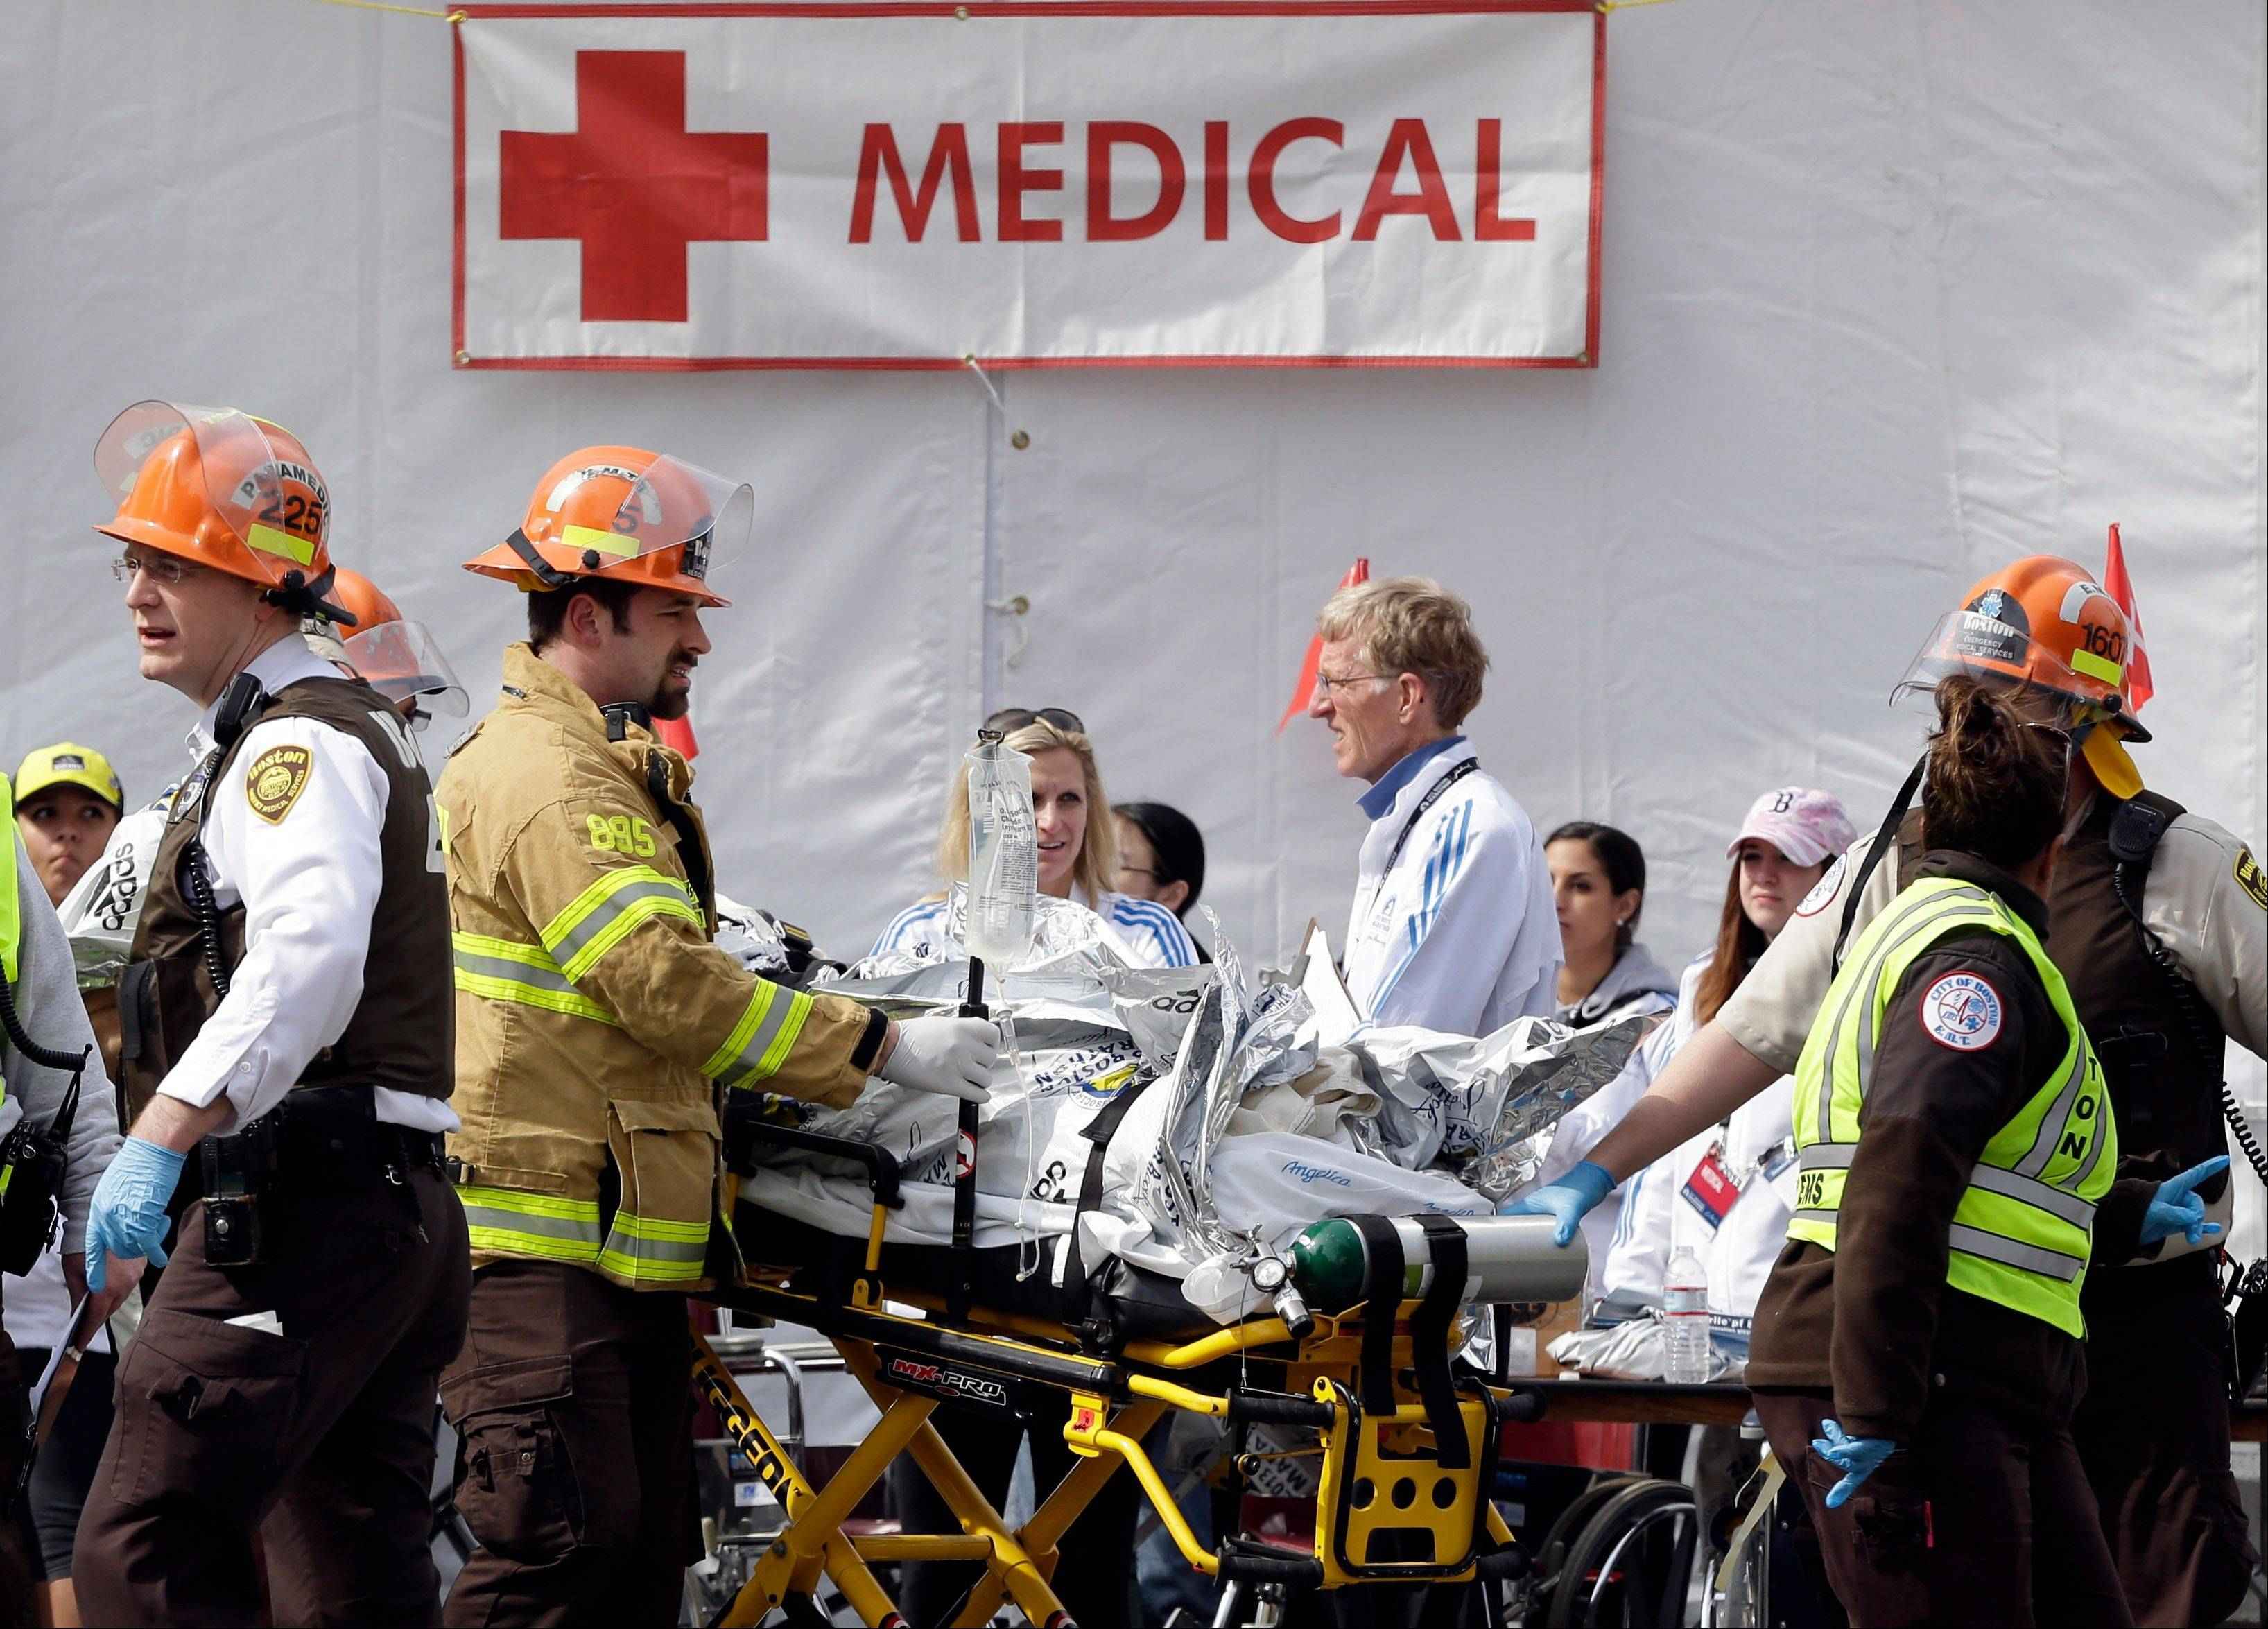 Medical personnel work outside the medical tent in the aftermath of two blasts which exploded near the finish line of the Boston Marathon in Boston, Monday, April 15, 2013.